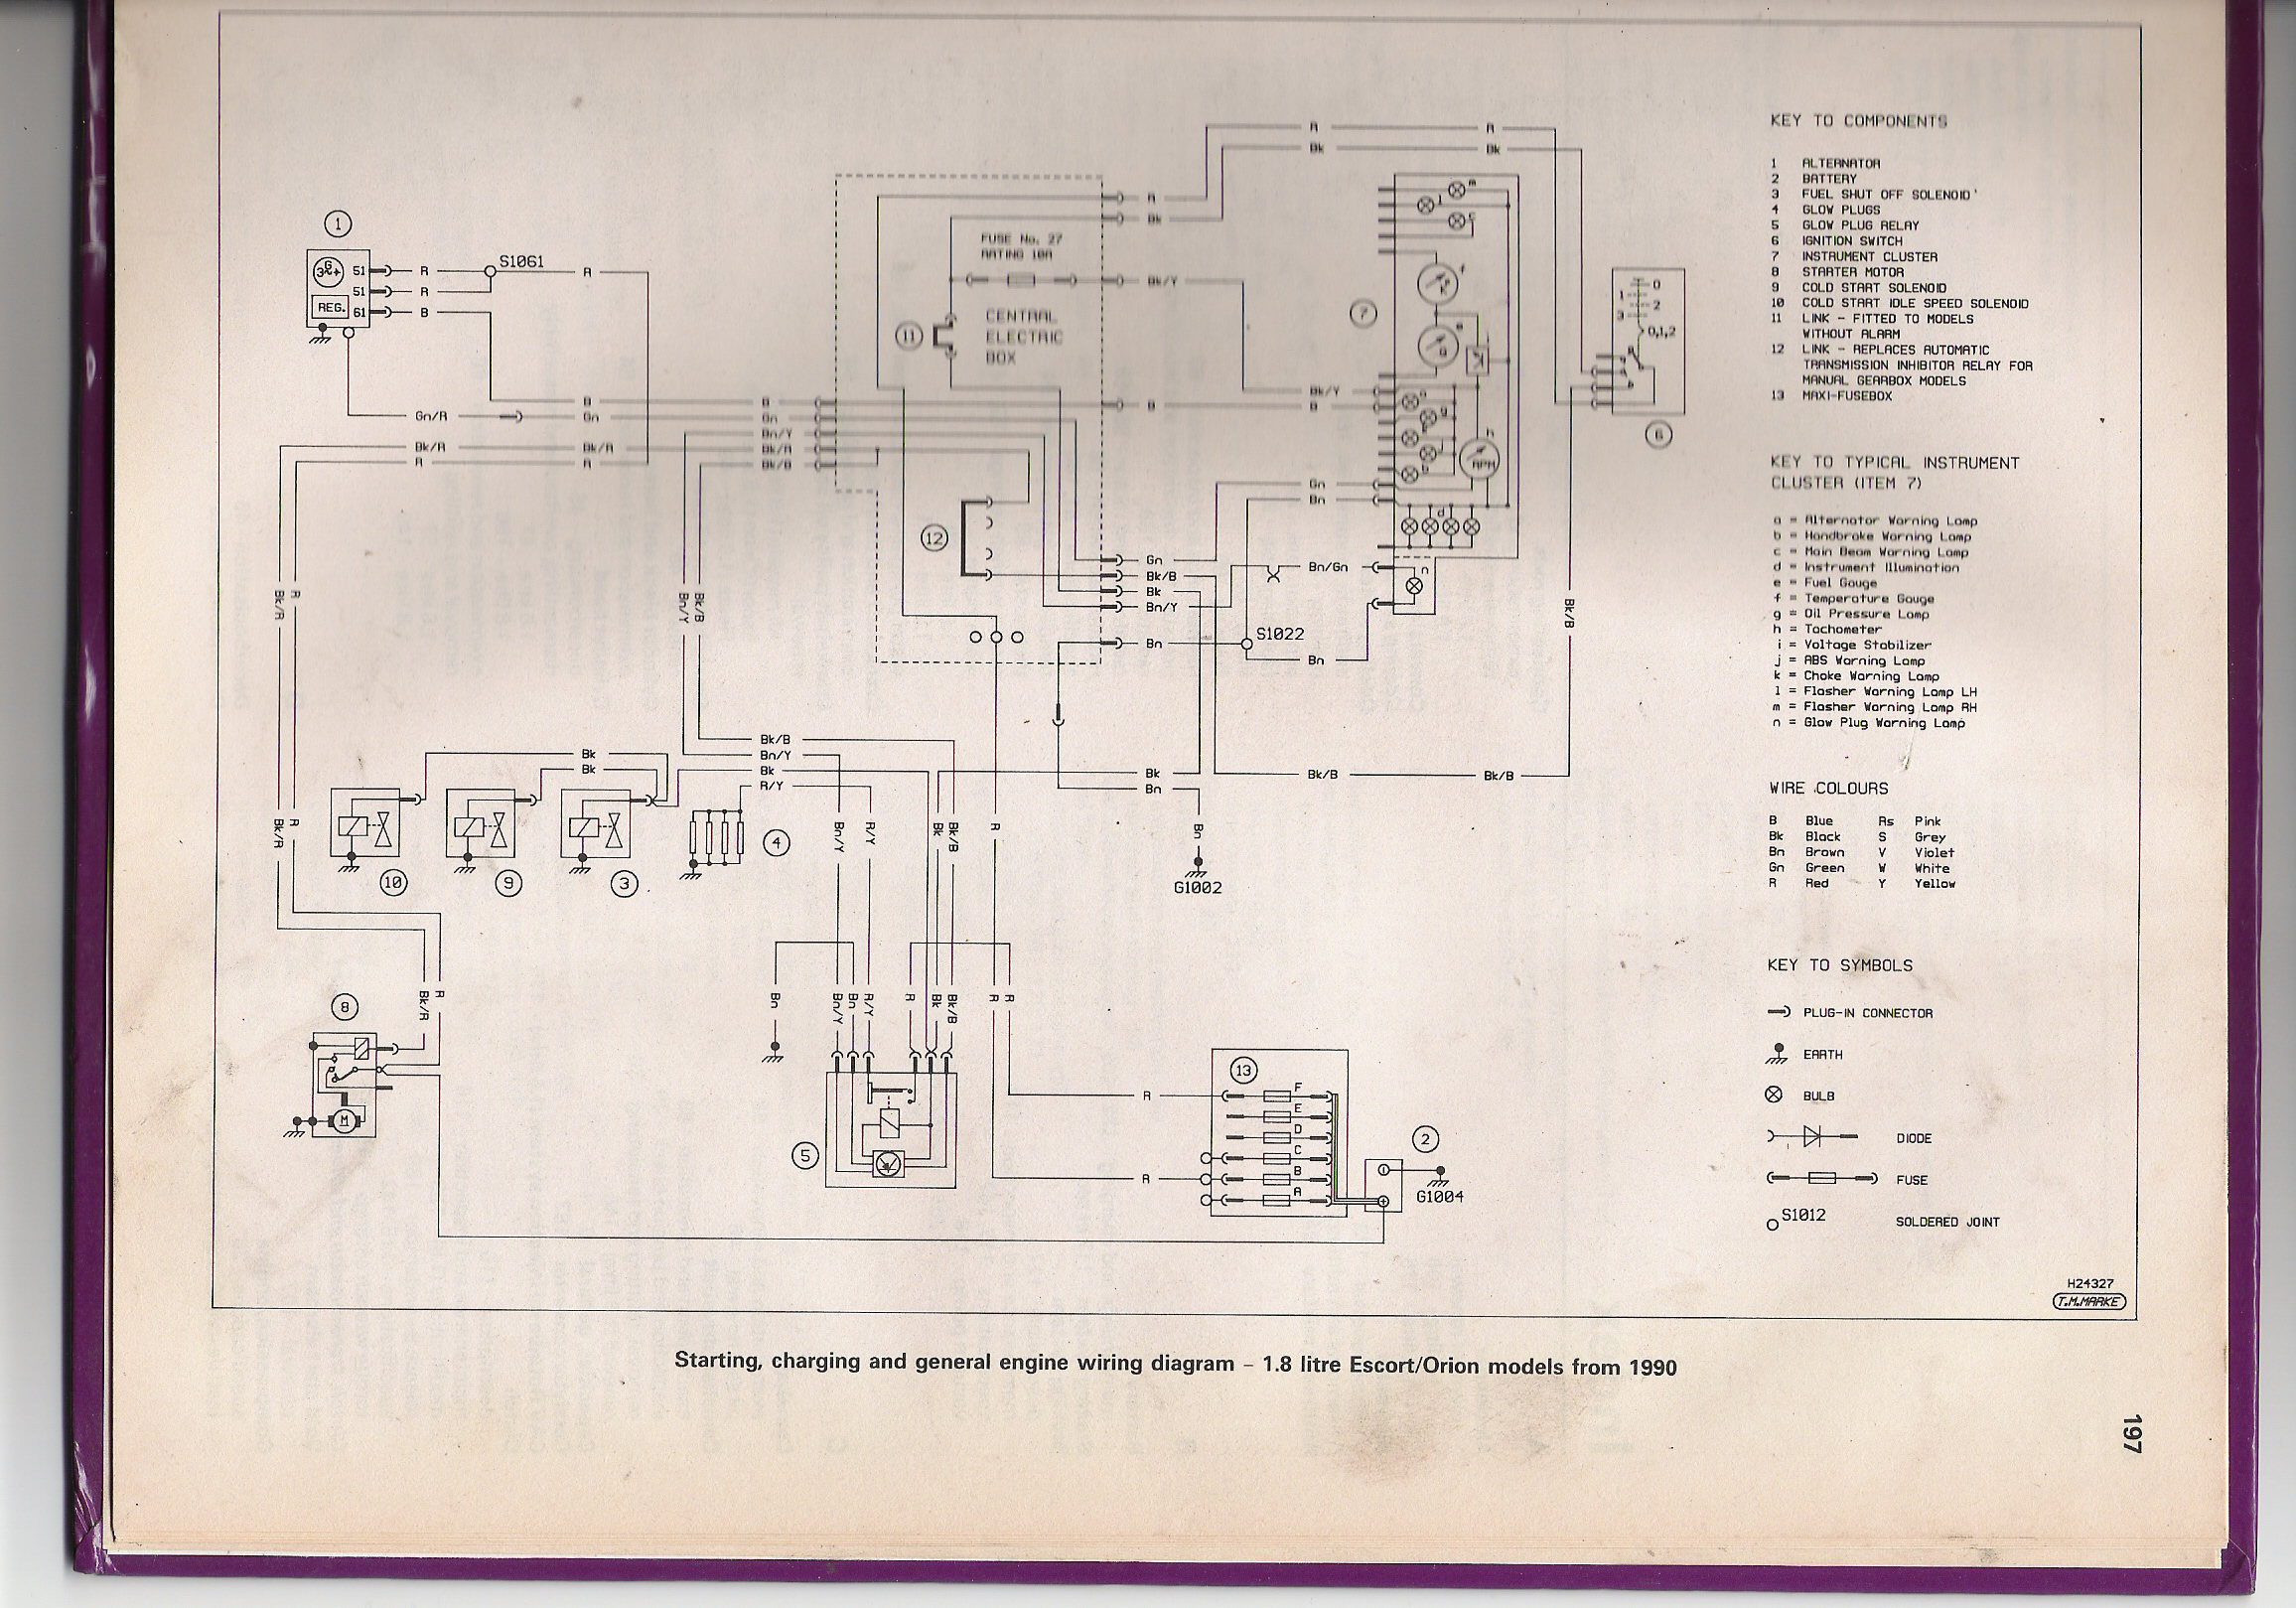 fordwiringdl mk4 wiring diagram wiring diagram symbols \u2022 wiring diagrams j 1999 ford escort wiring diagram pdf at love-stories.co